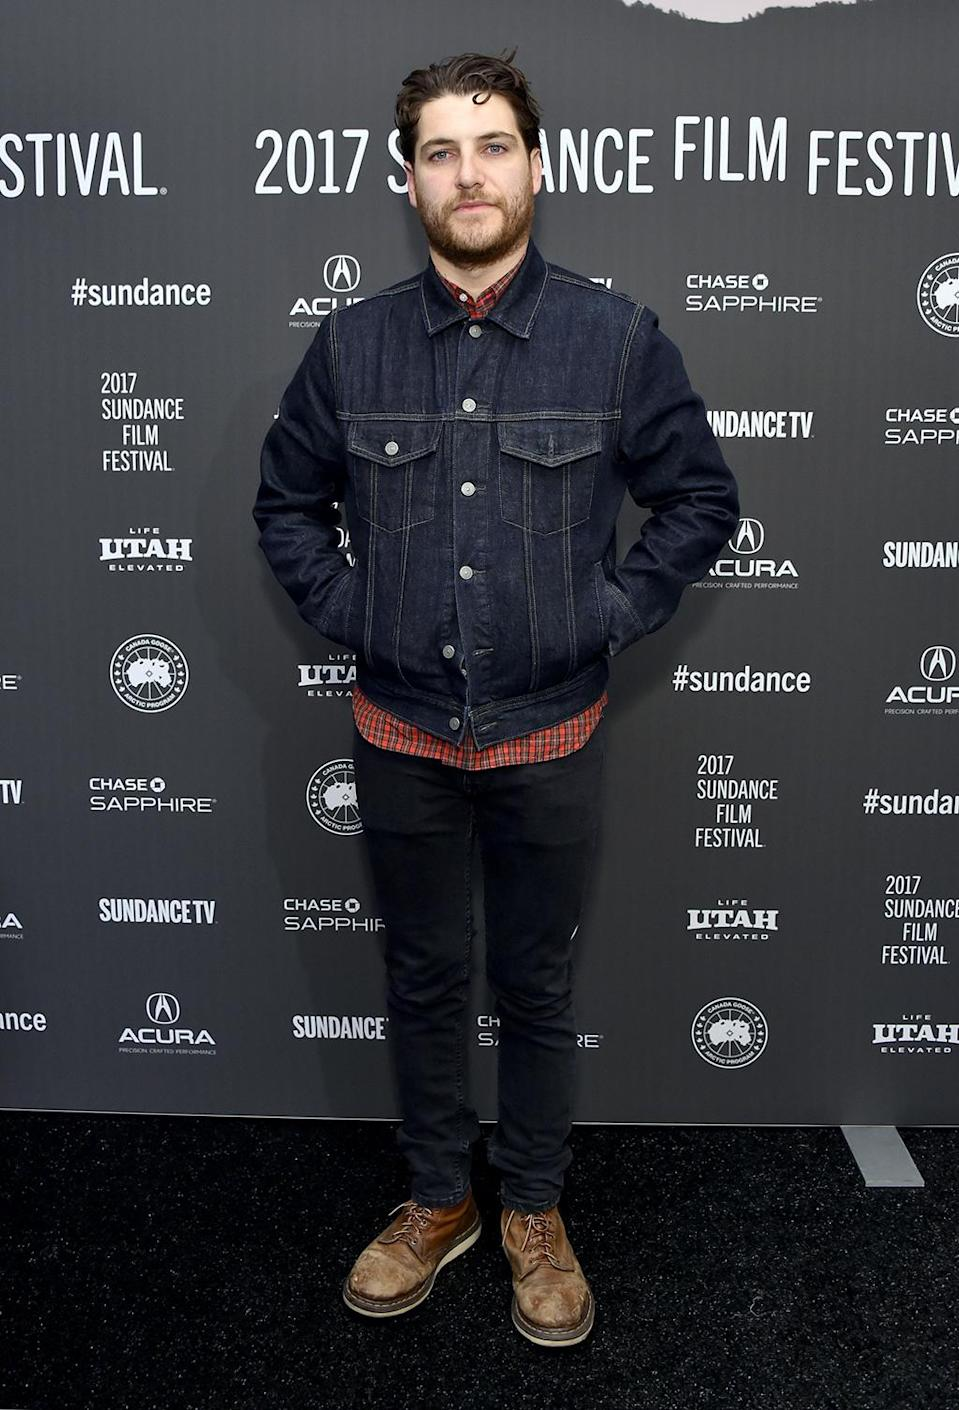 <p>A Sundance vet, the actor returns for 'The Little Hours' premiere. (Photo: Michael Loccisano/Getty Images) </p>